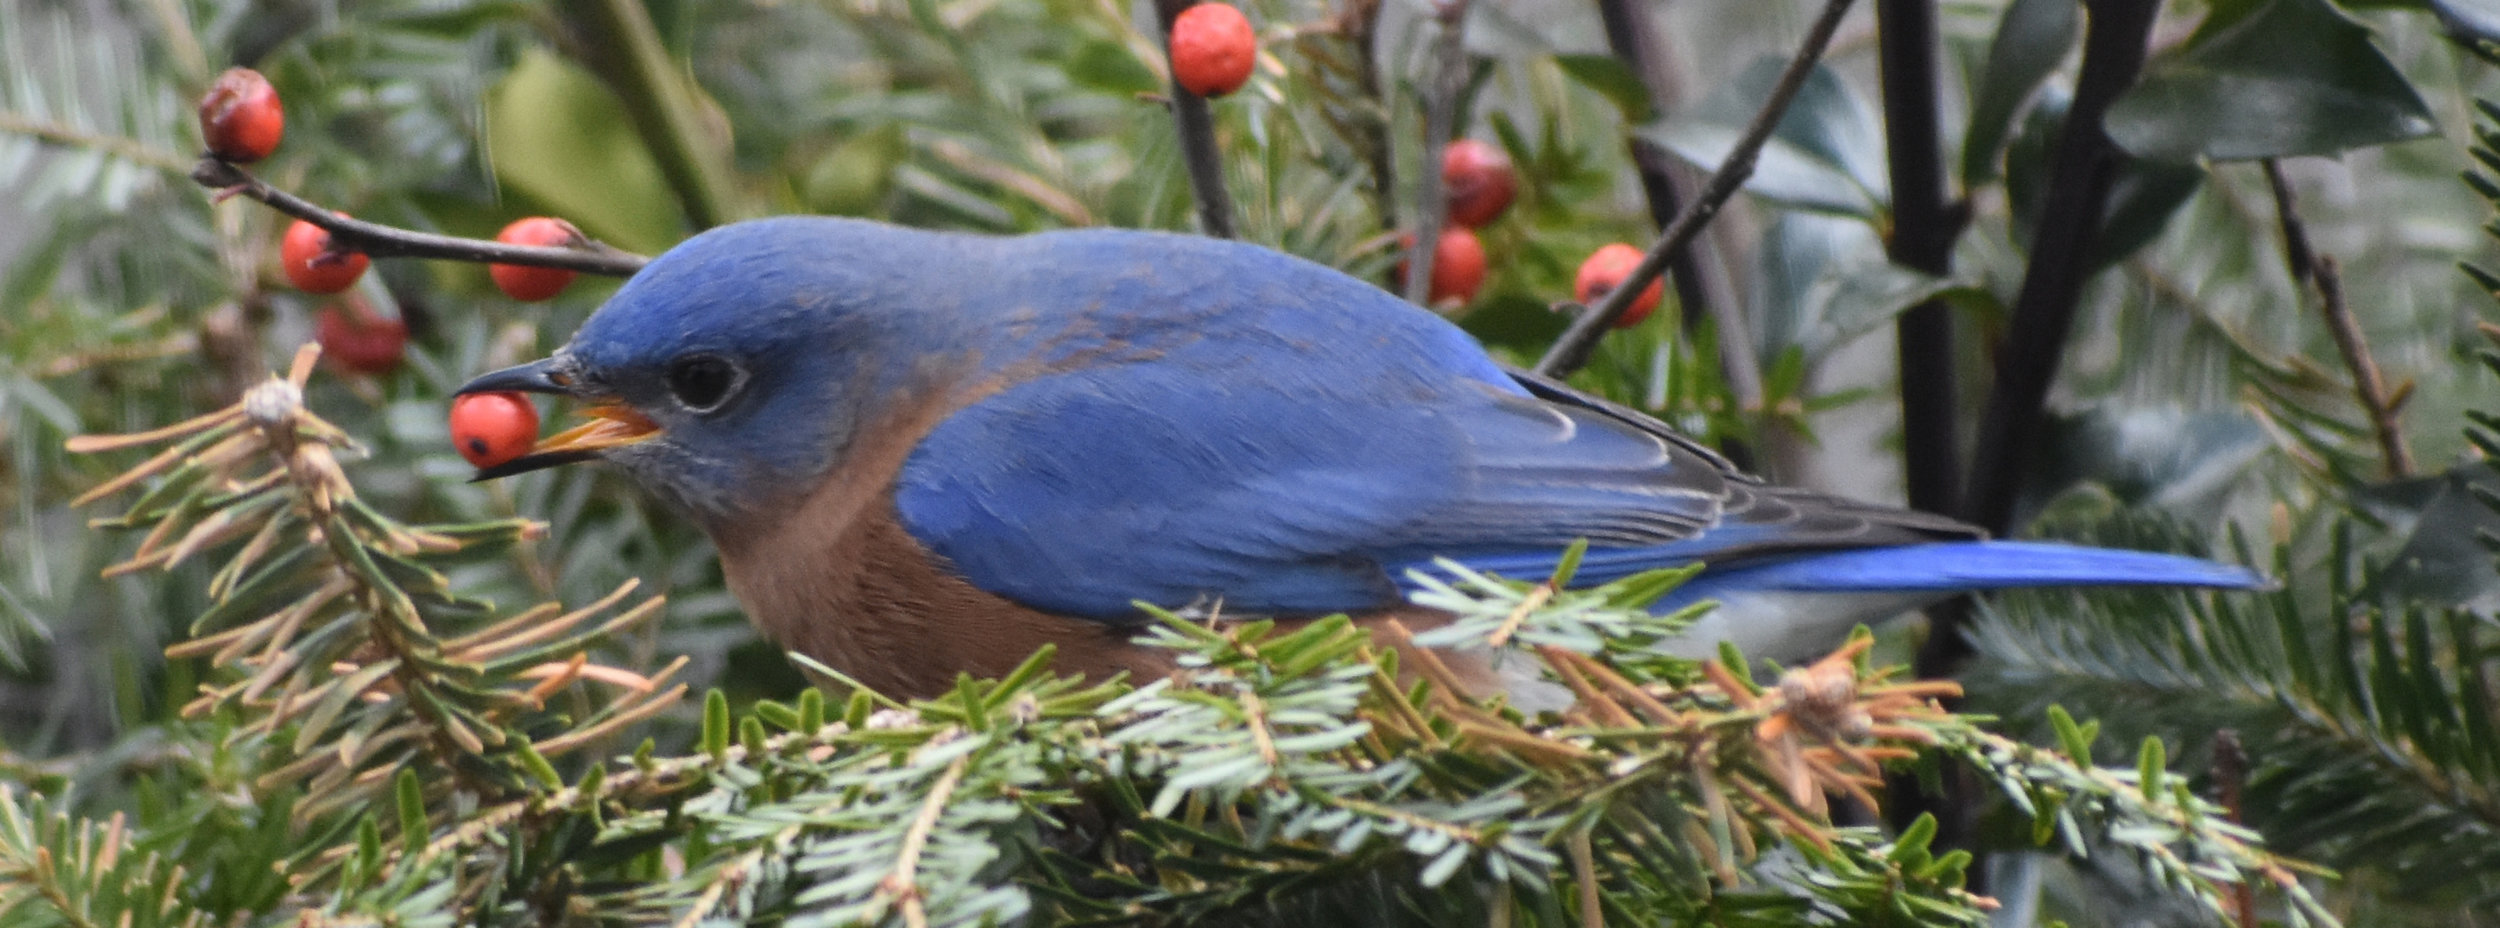 Bluebird eating Winterberry from Christmas Decoration